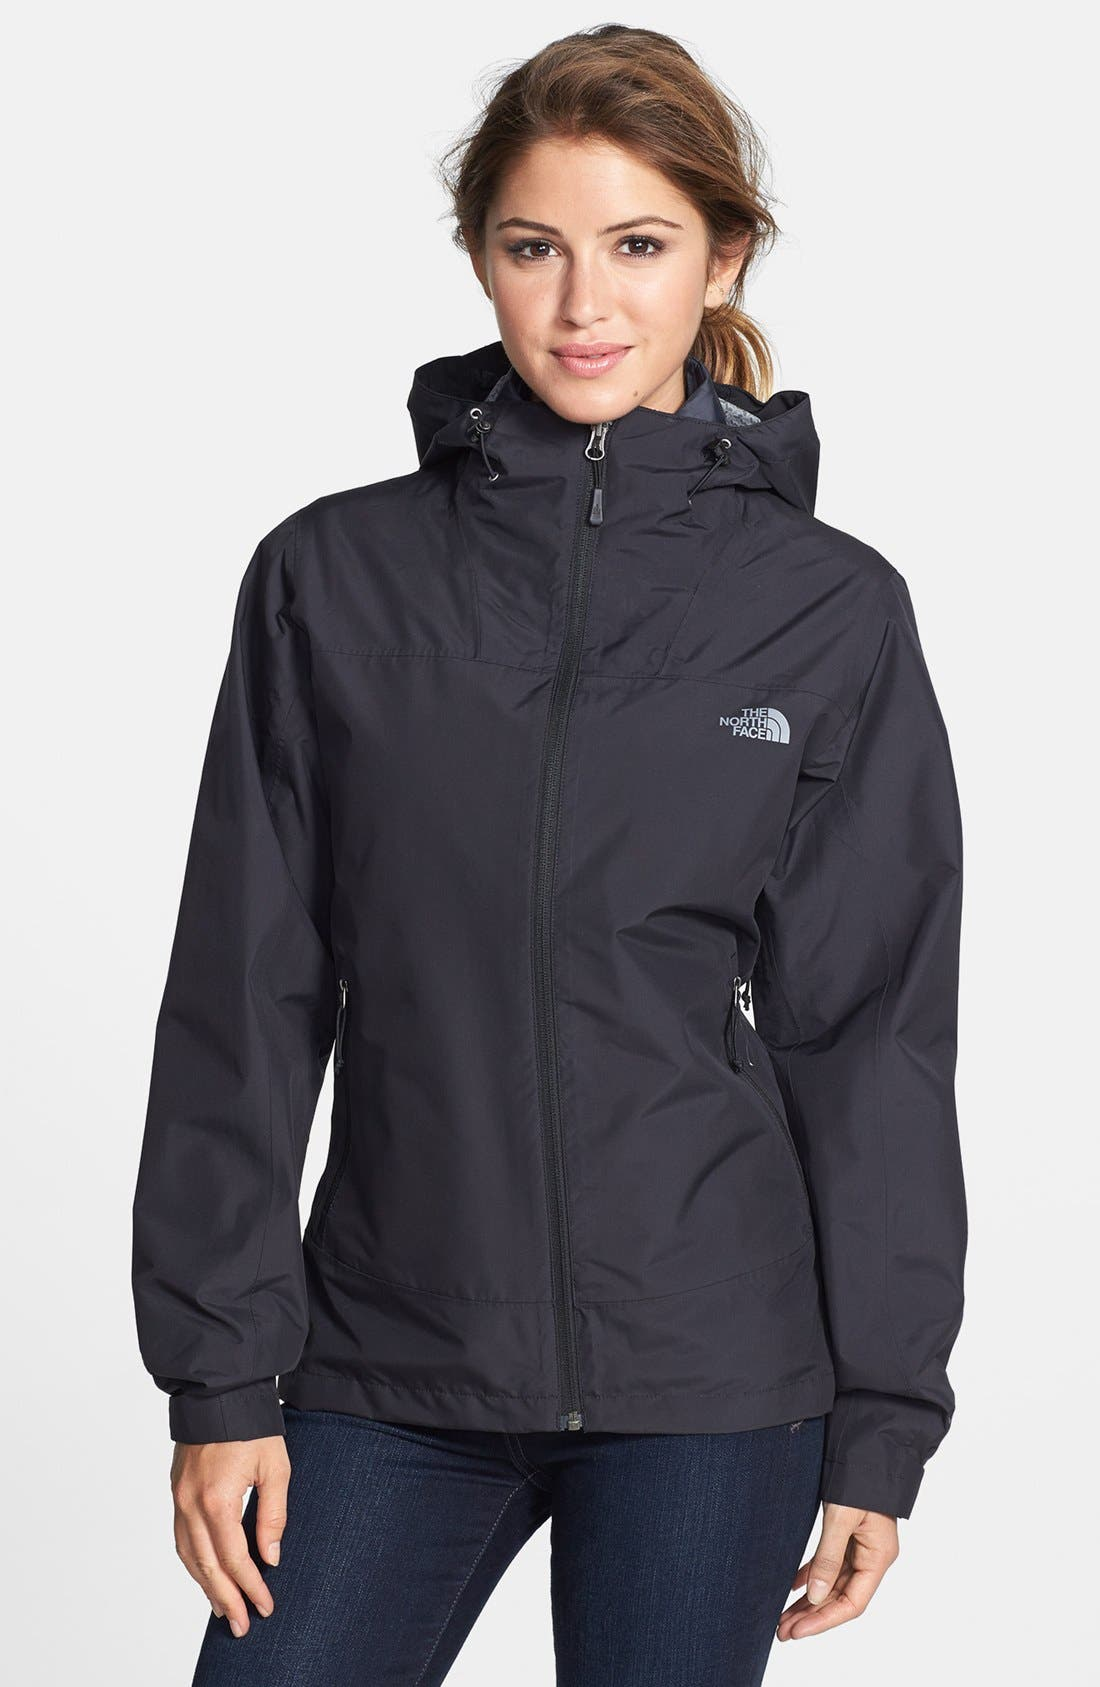 Alternate Image 1 Selected - The North Face 'Blaze TriClimate®' Waterproof 3-in-1 Jacket